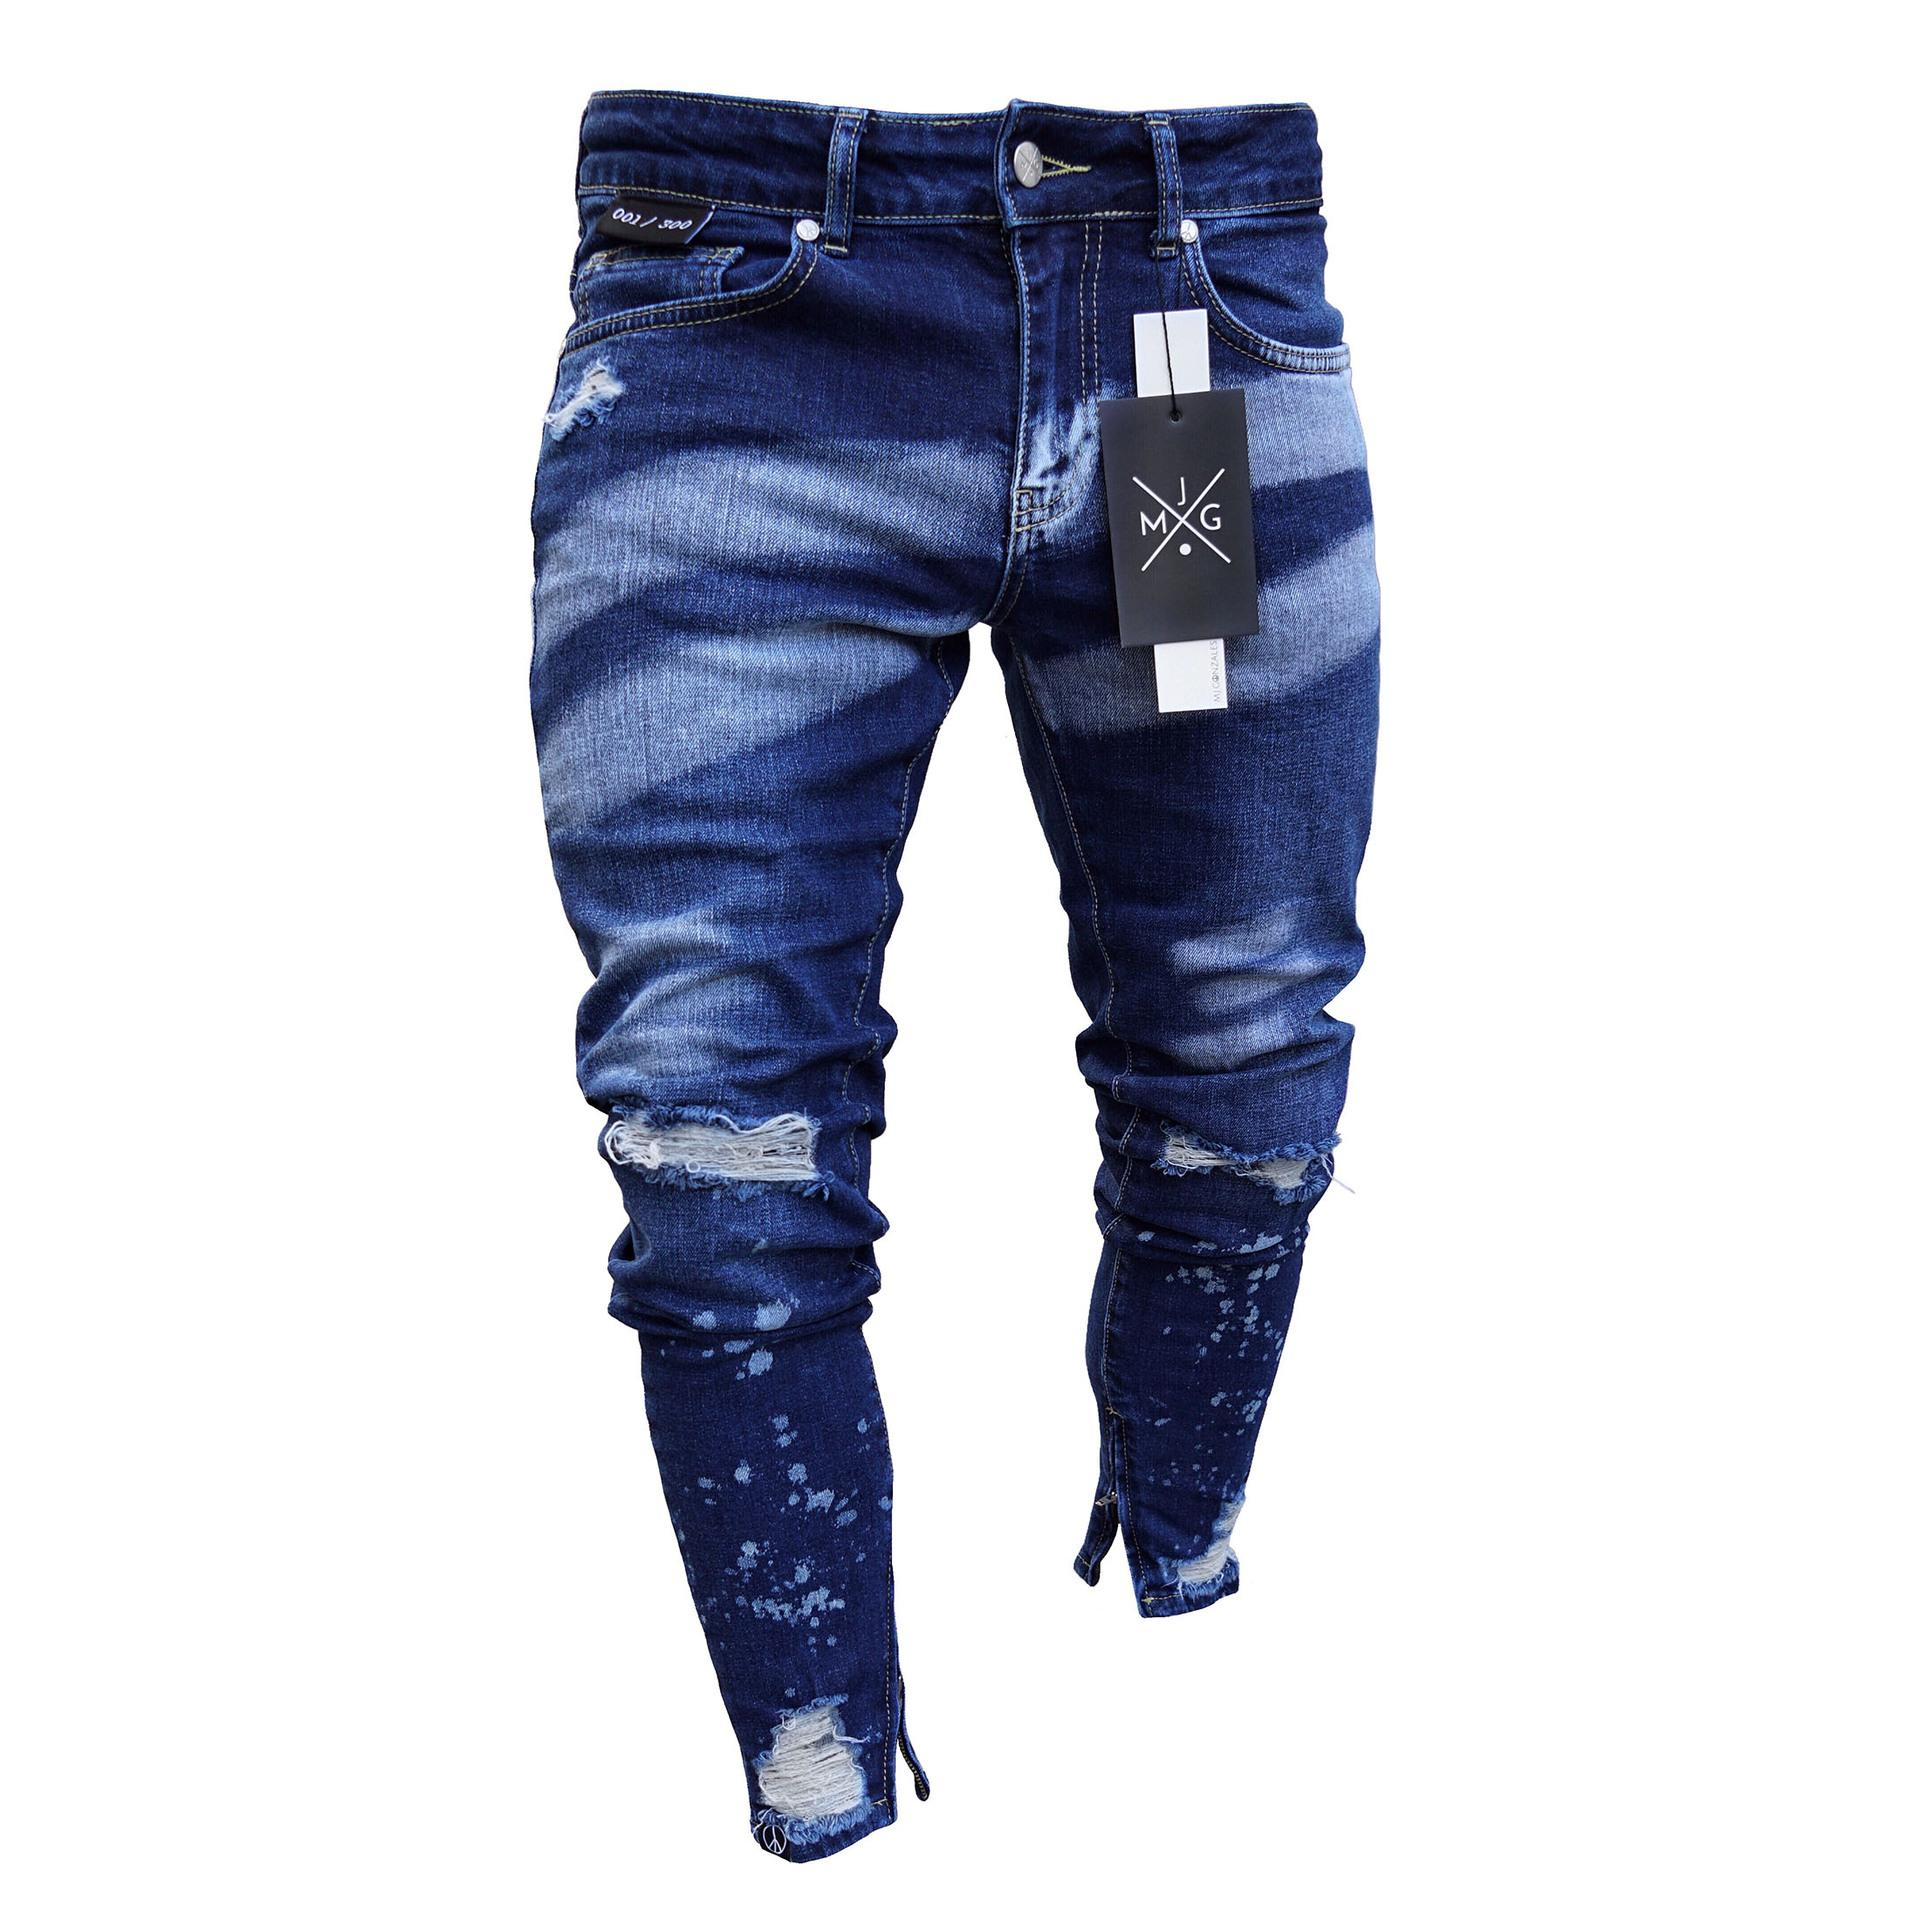 Bleu délavé Jeans Vêtements Vêtements Gradient Crayon Jean Pantalon Long Slim Fit Zipper Biker Jeans